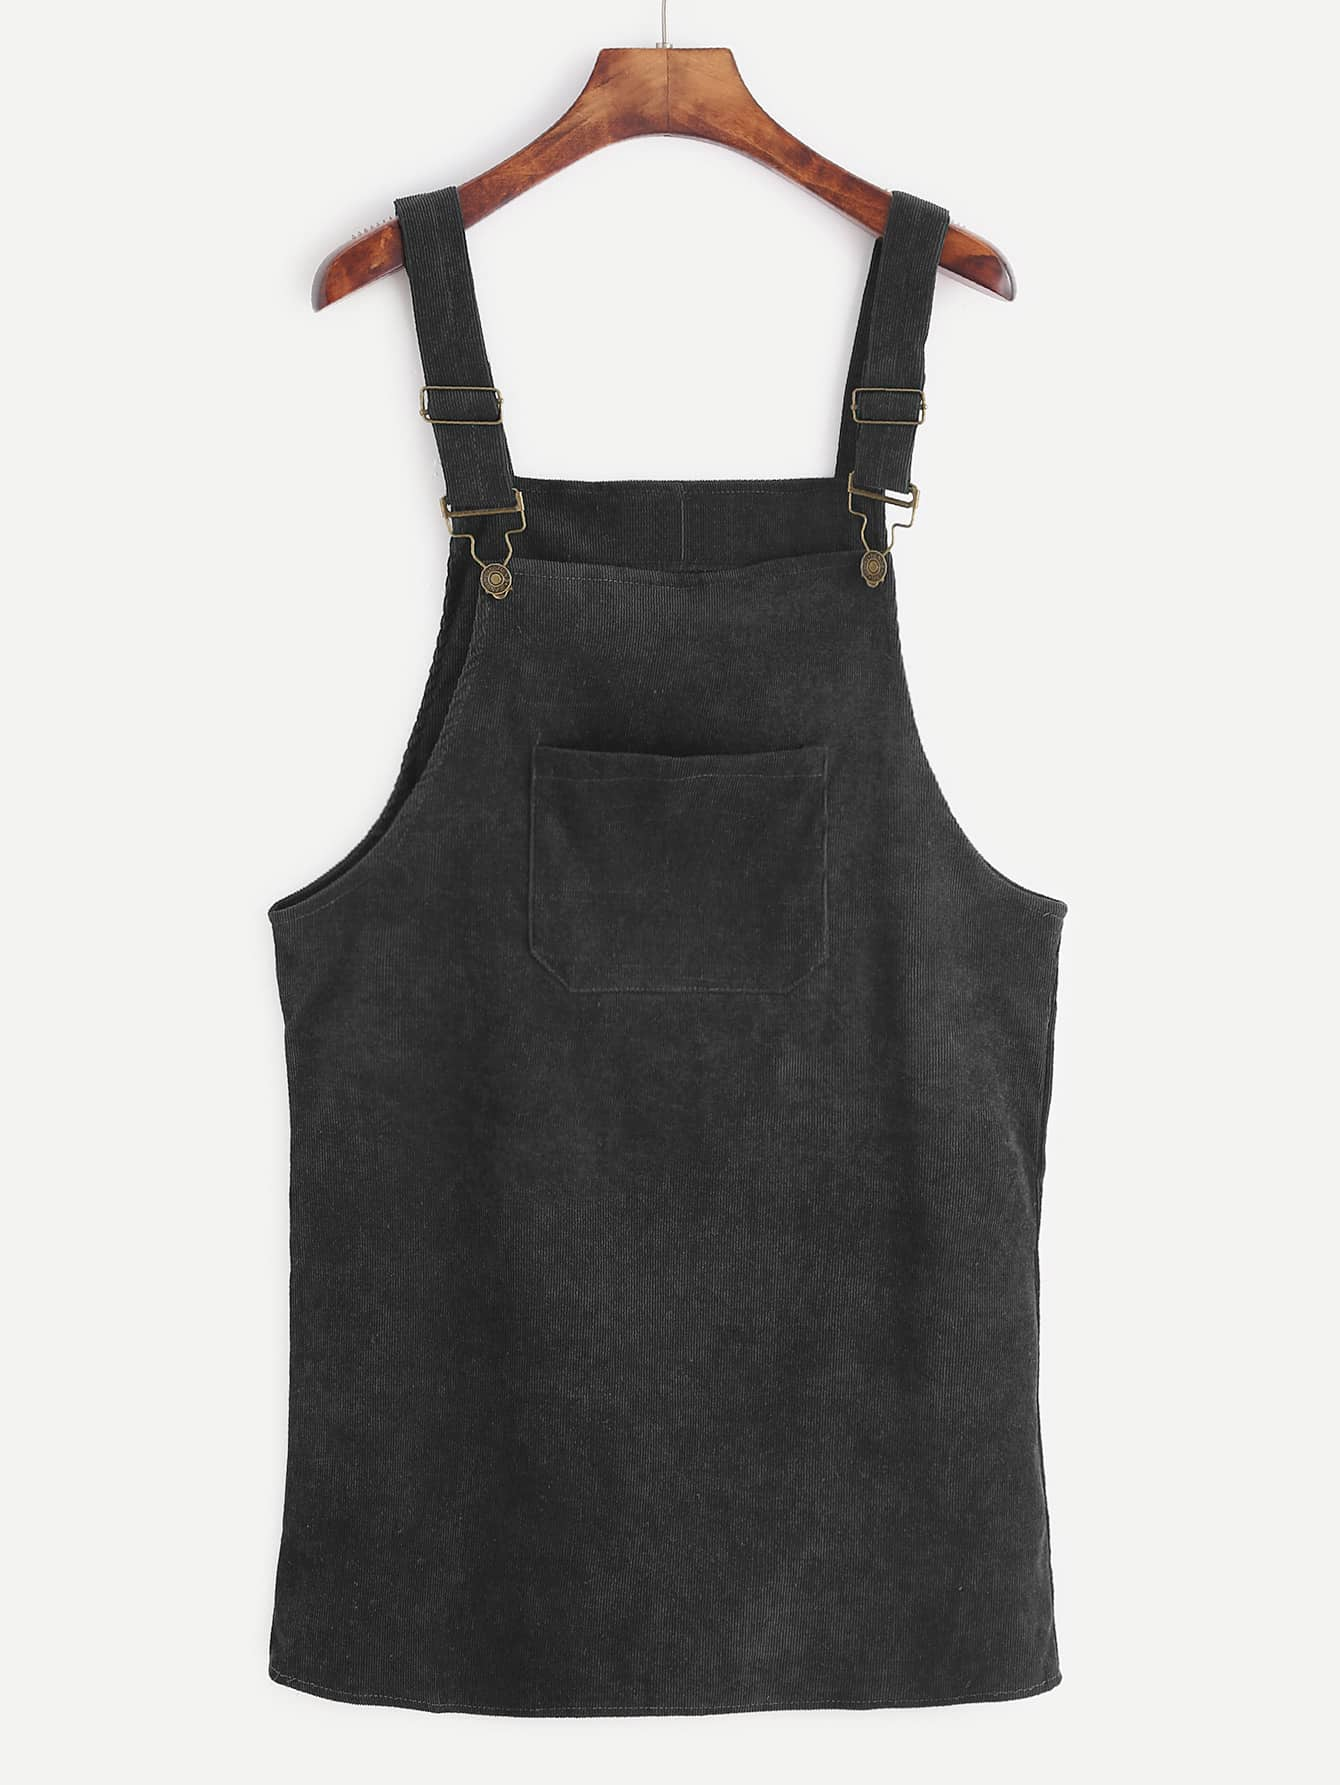 Black Corduroy Overall Dress With Pocket dress161208108